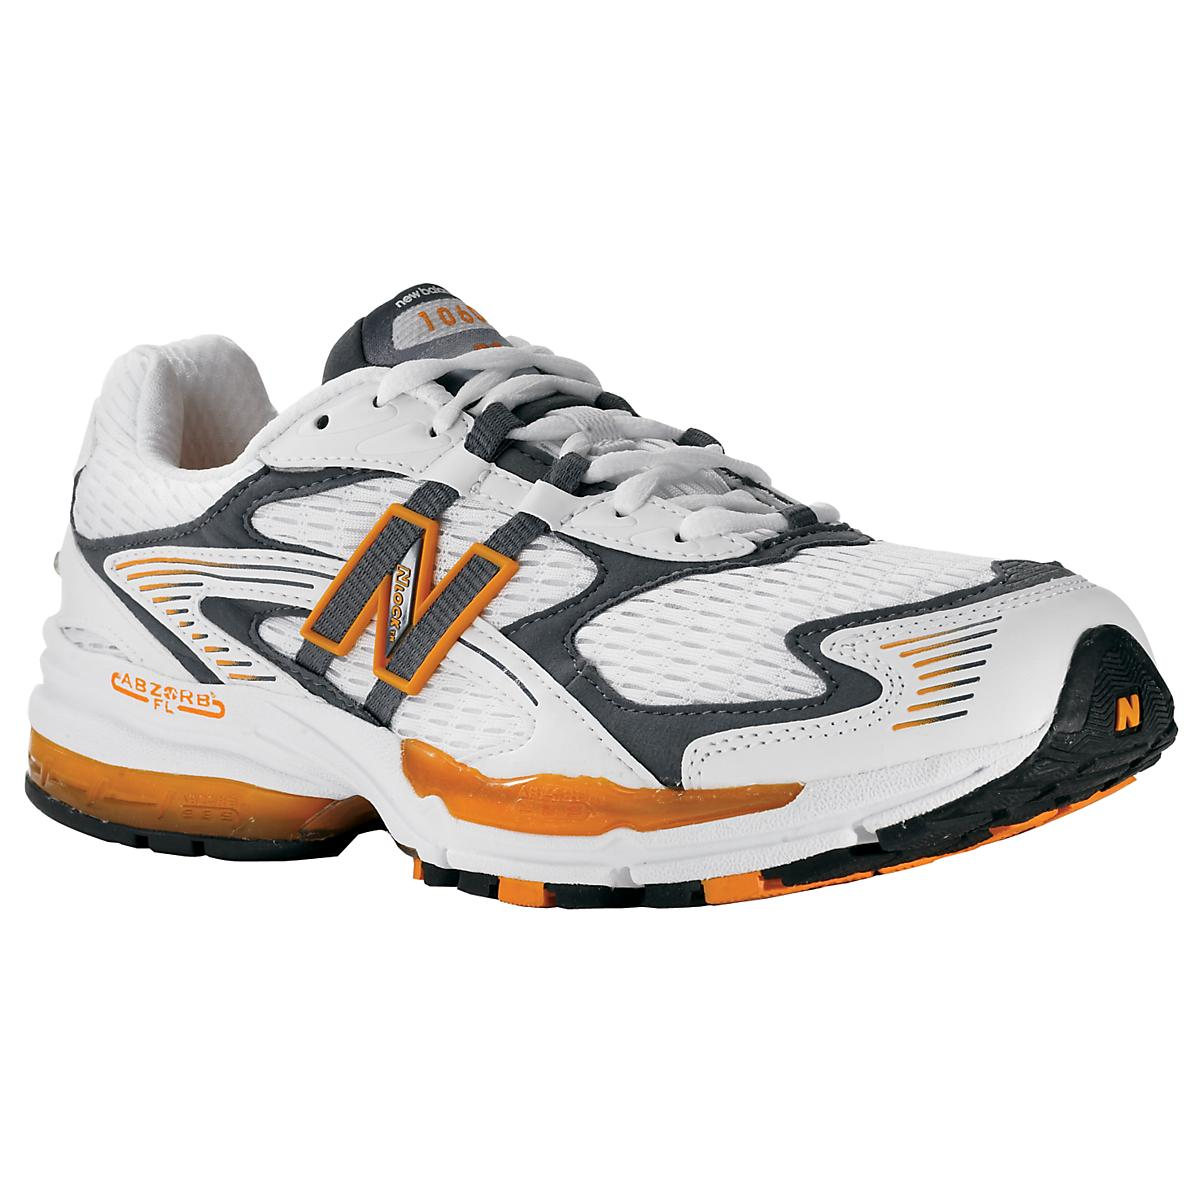 b9492a8f9f10 Mens New Balance 1060 Running Shoe at Road Runner Sports